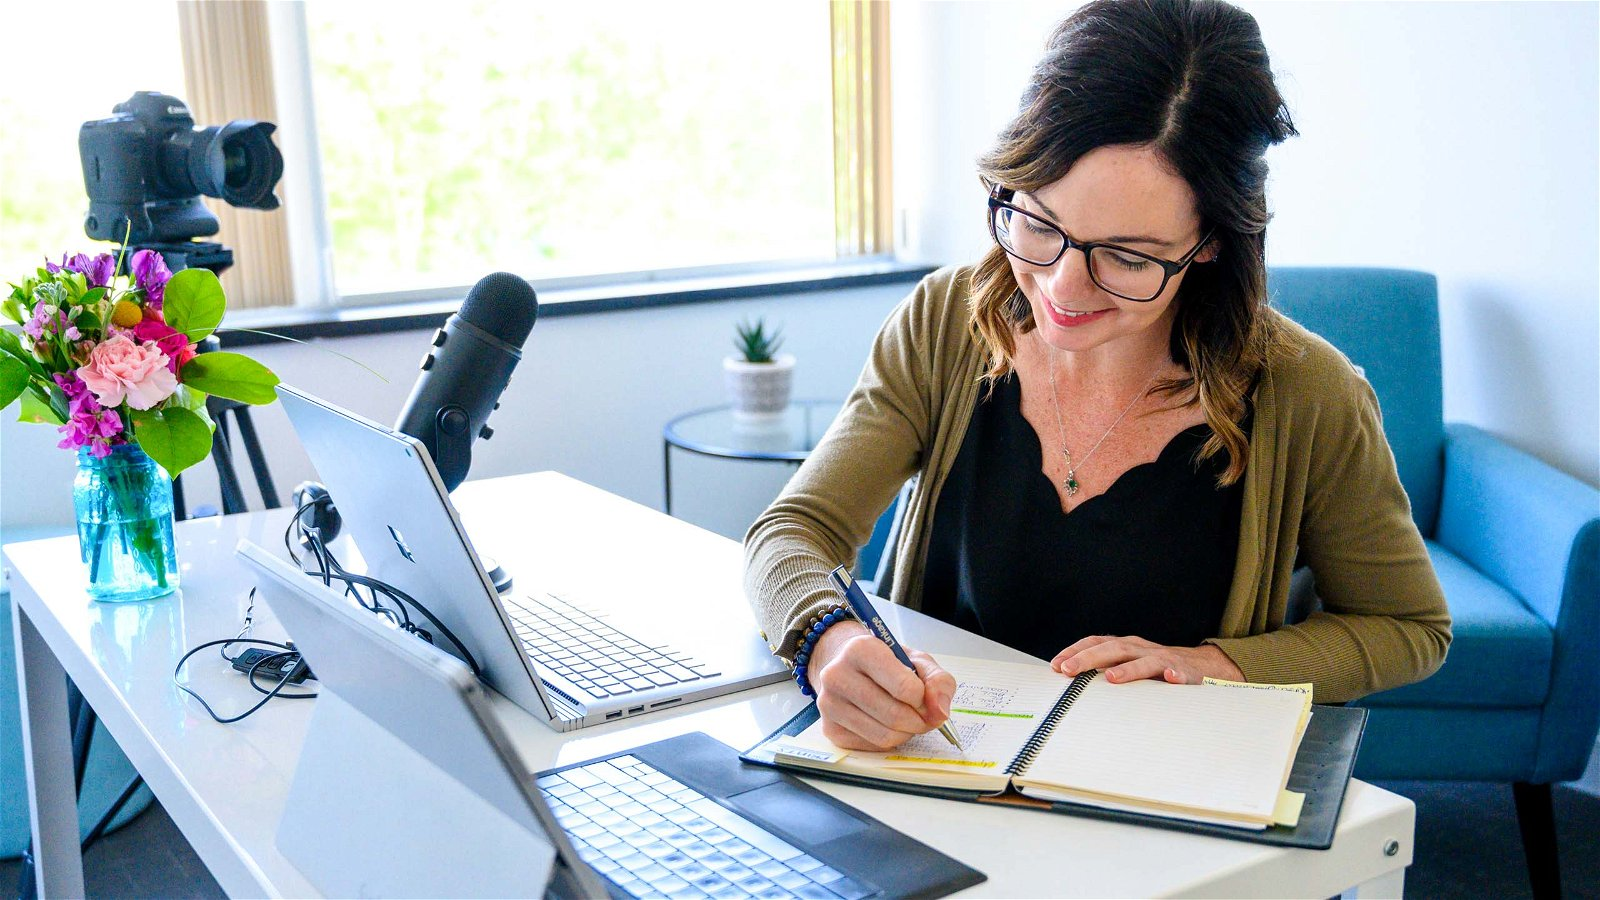 Smiling woman writes in notebook near computer